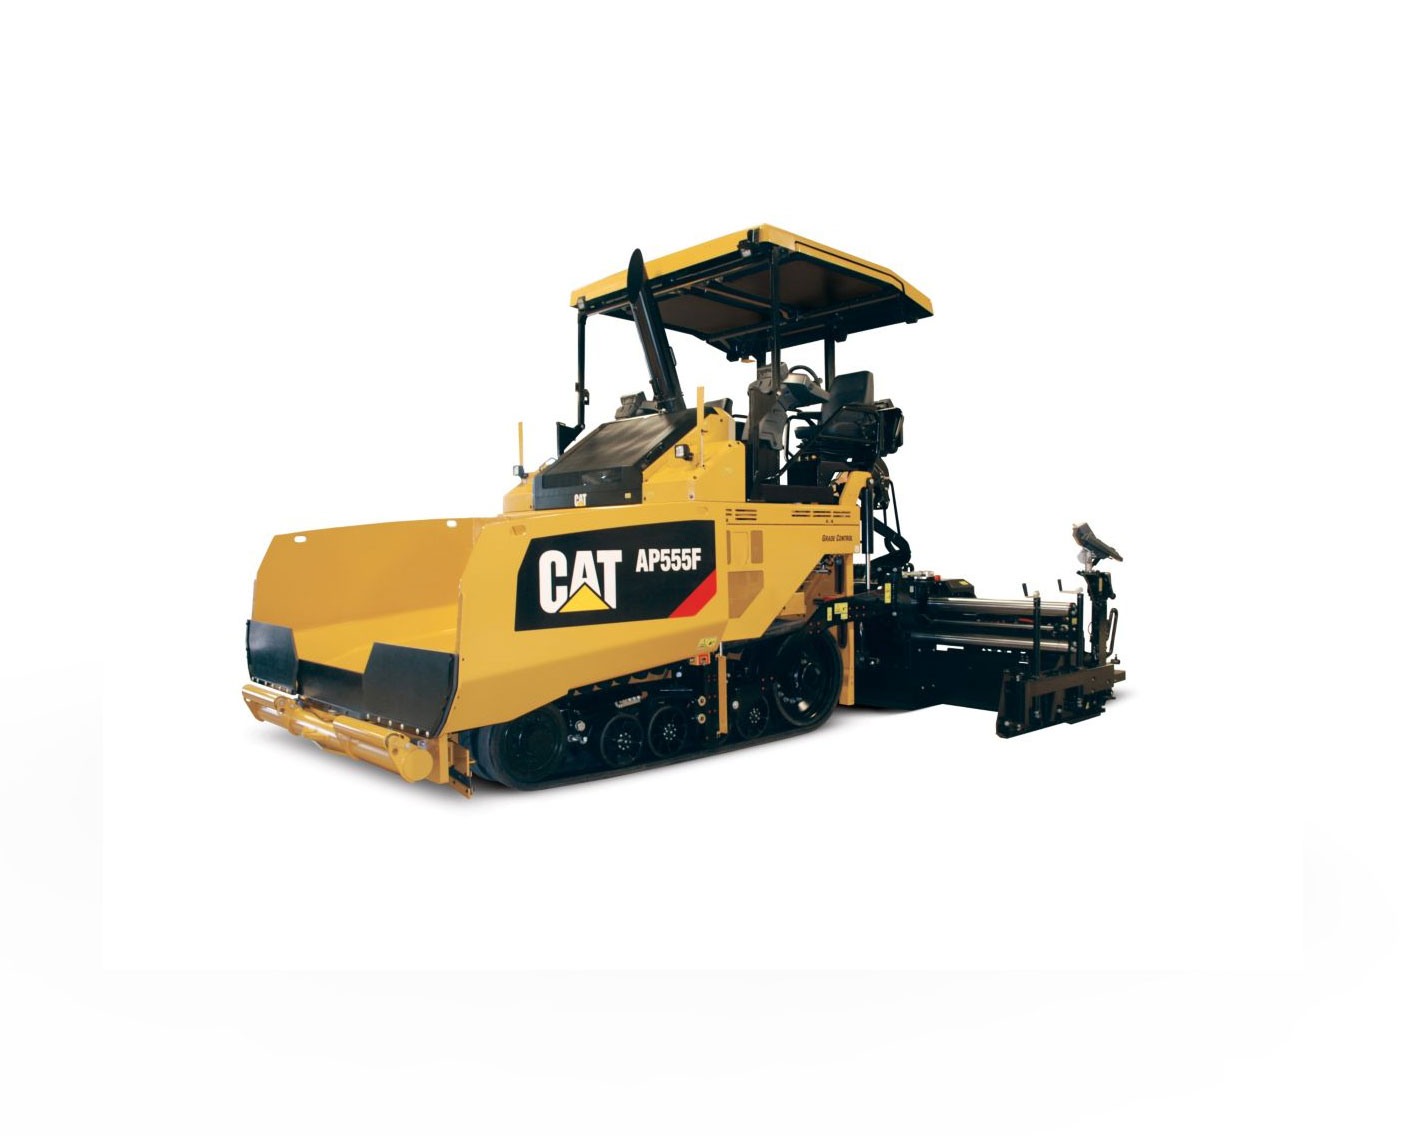 Road paver machine on rent in delhi NCR